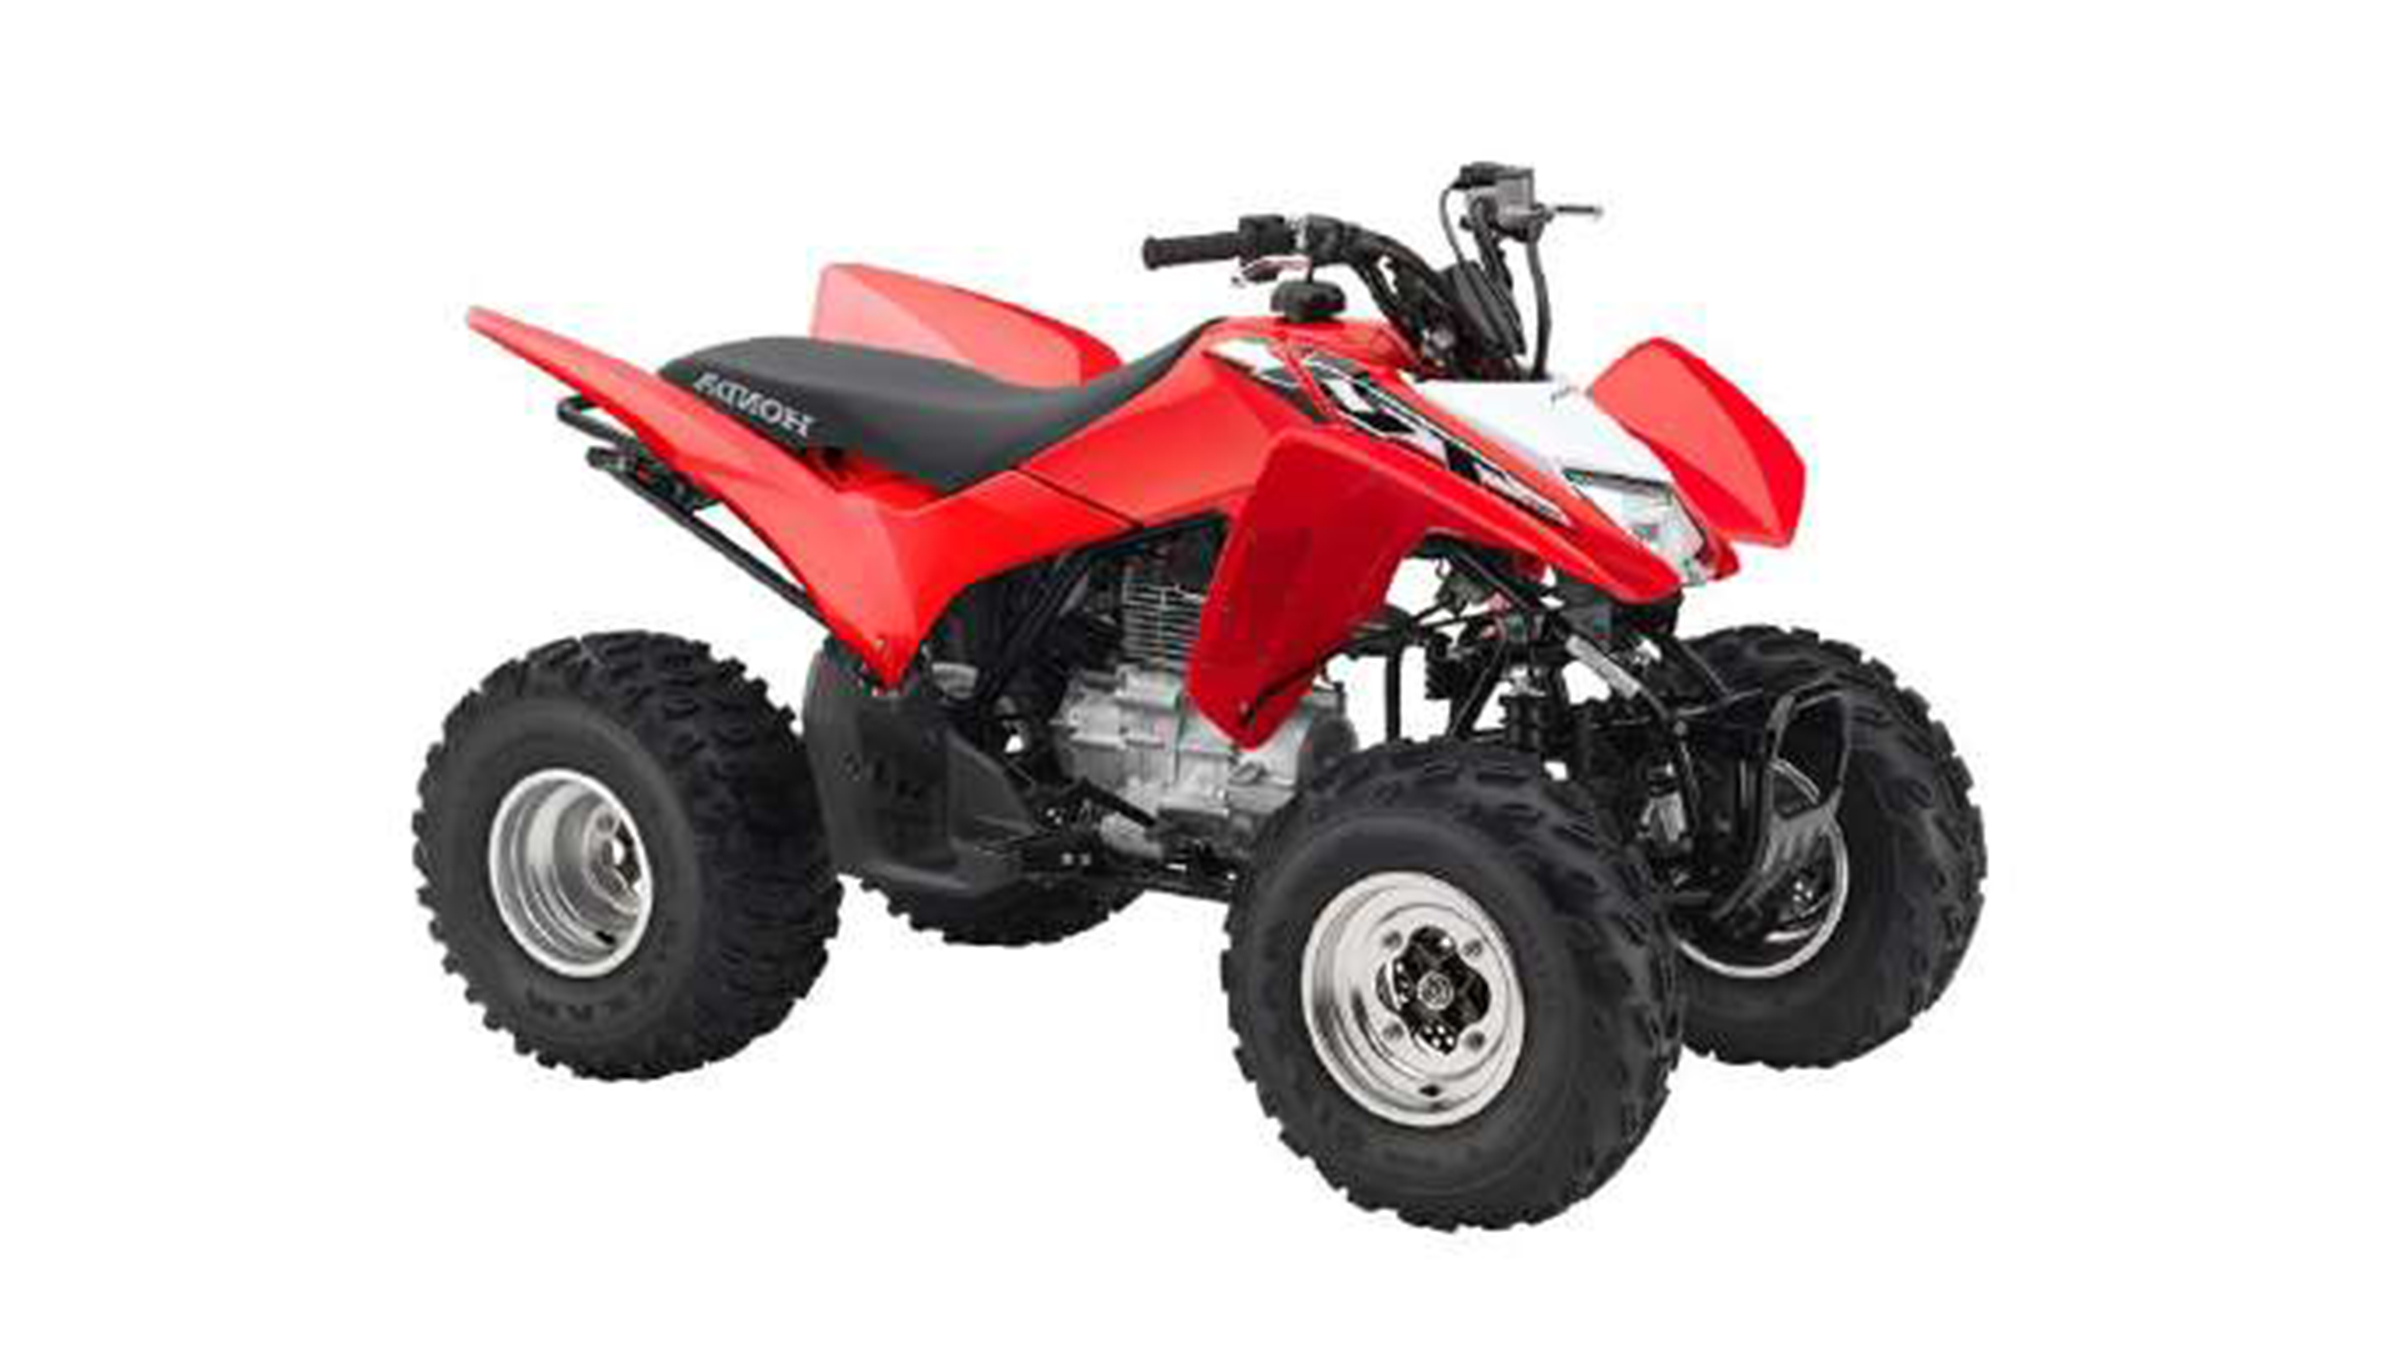 Rent a Honda 250ex ATV